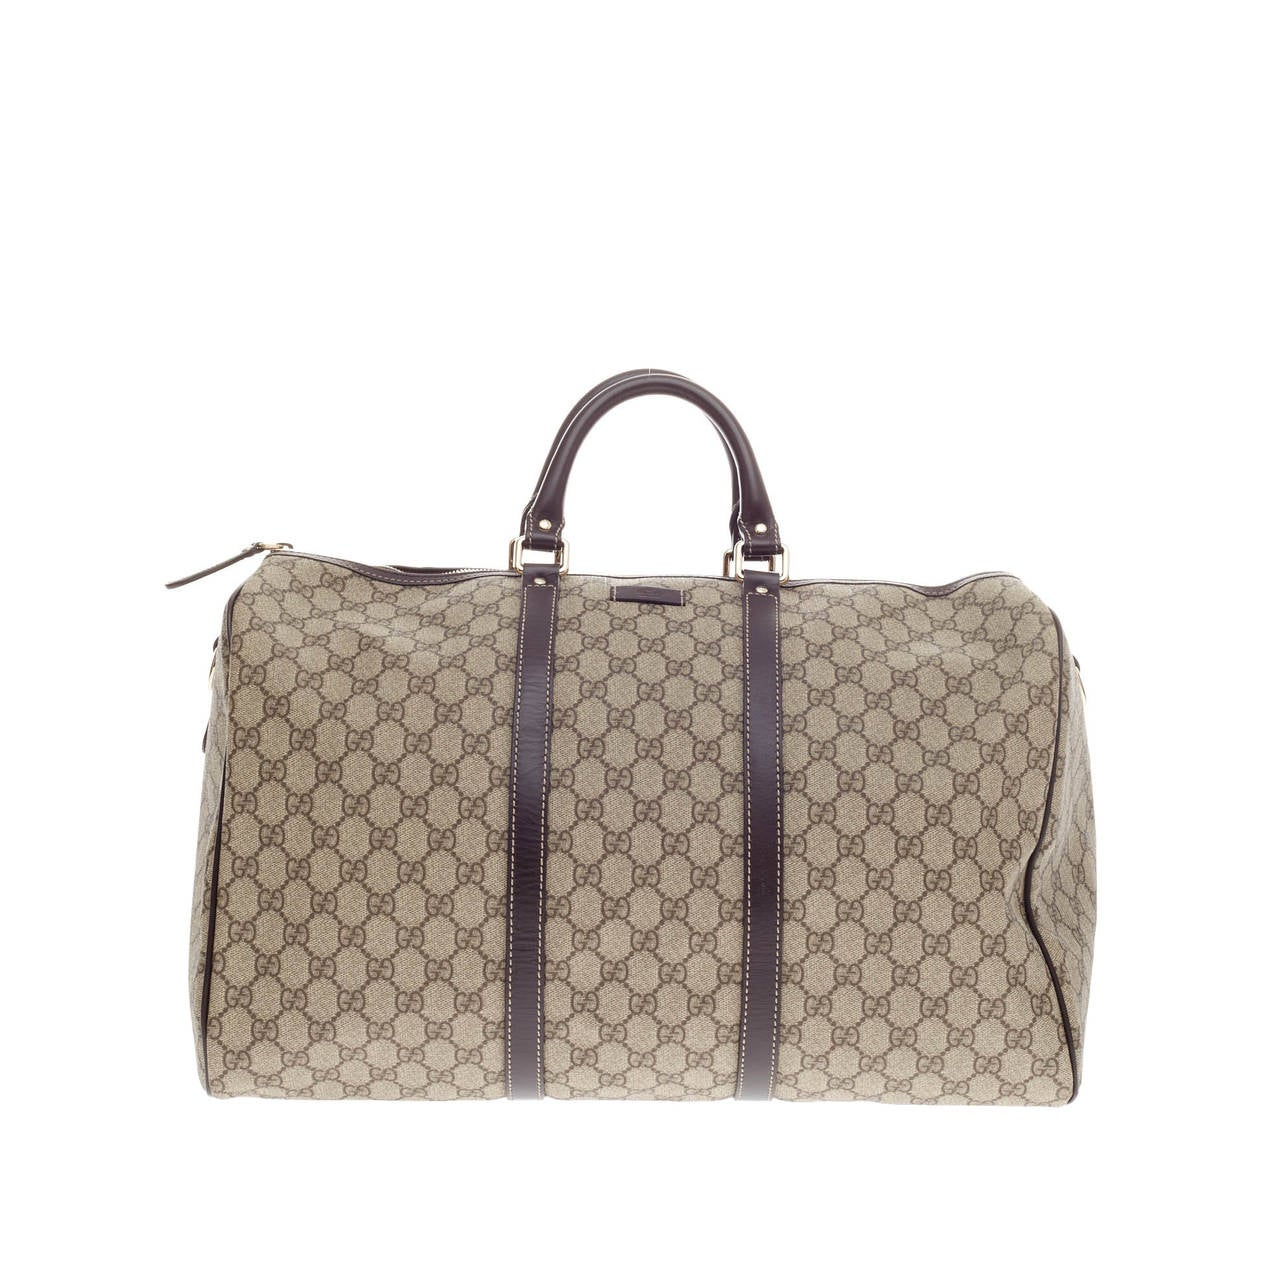 Gucci Joy Travel GG Coated Canvas at 1stdibs